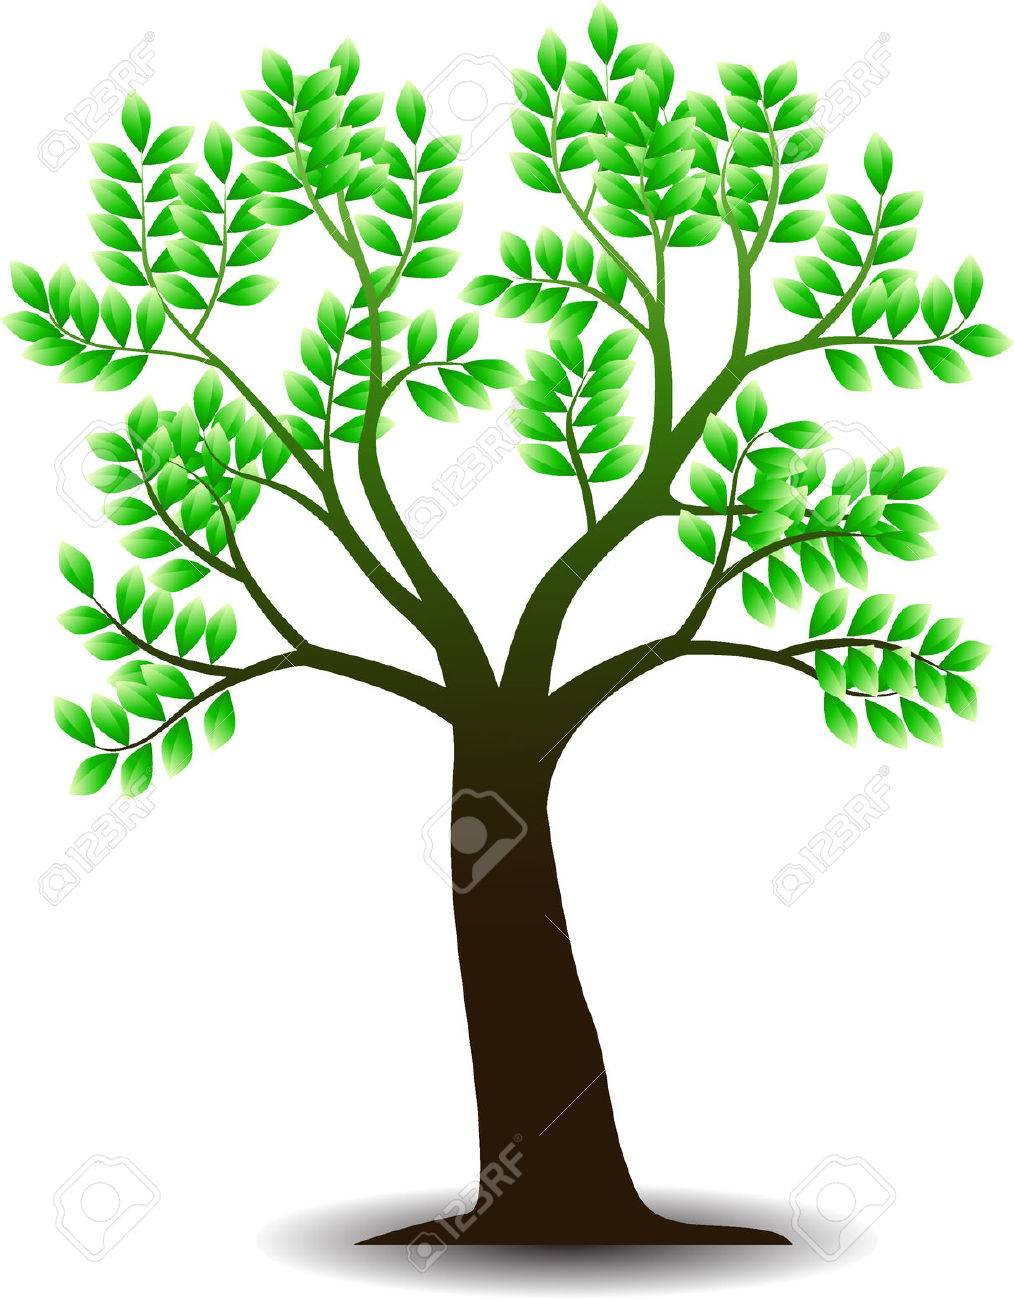 Tree Illustration Stock Vector - 4719026